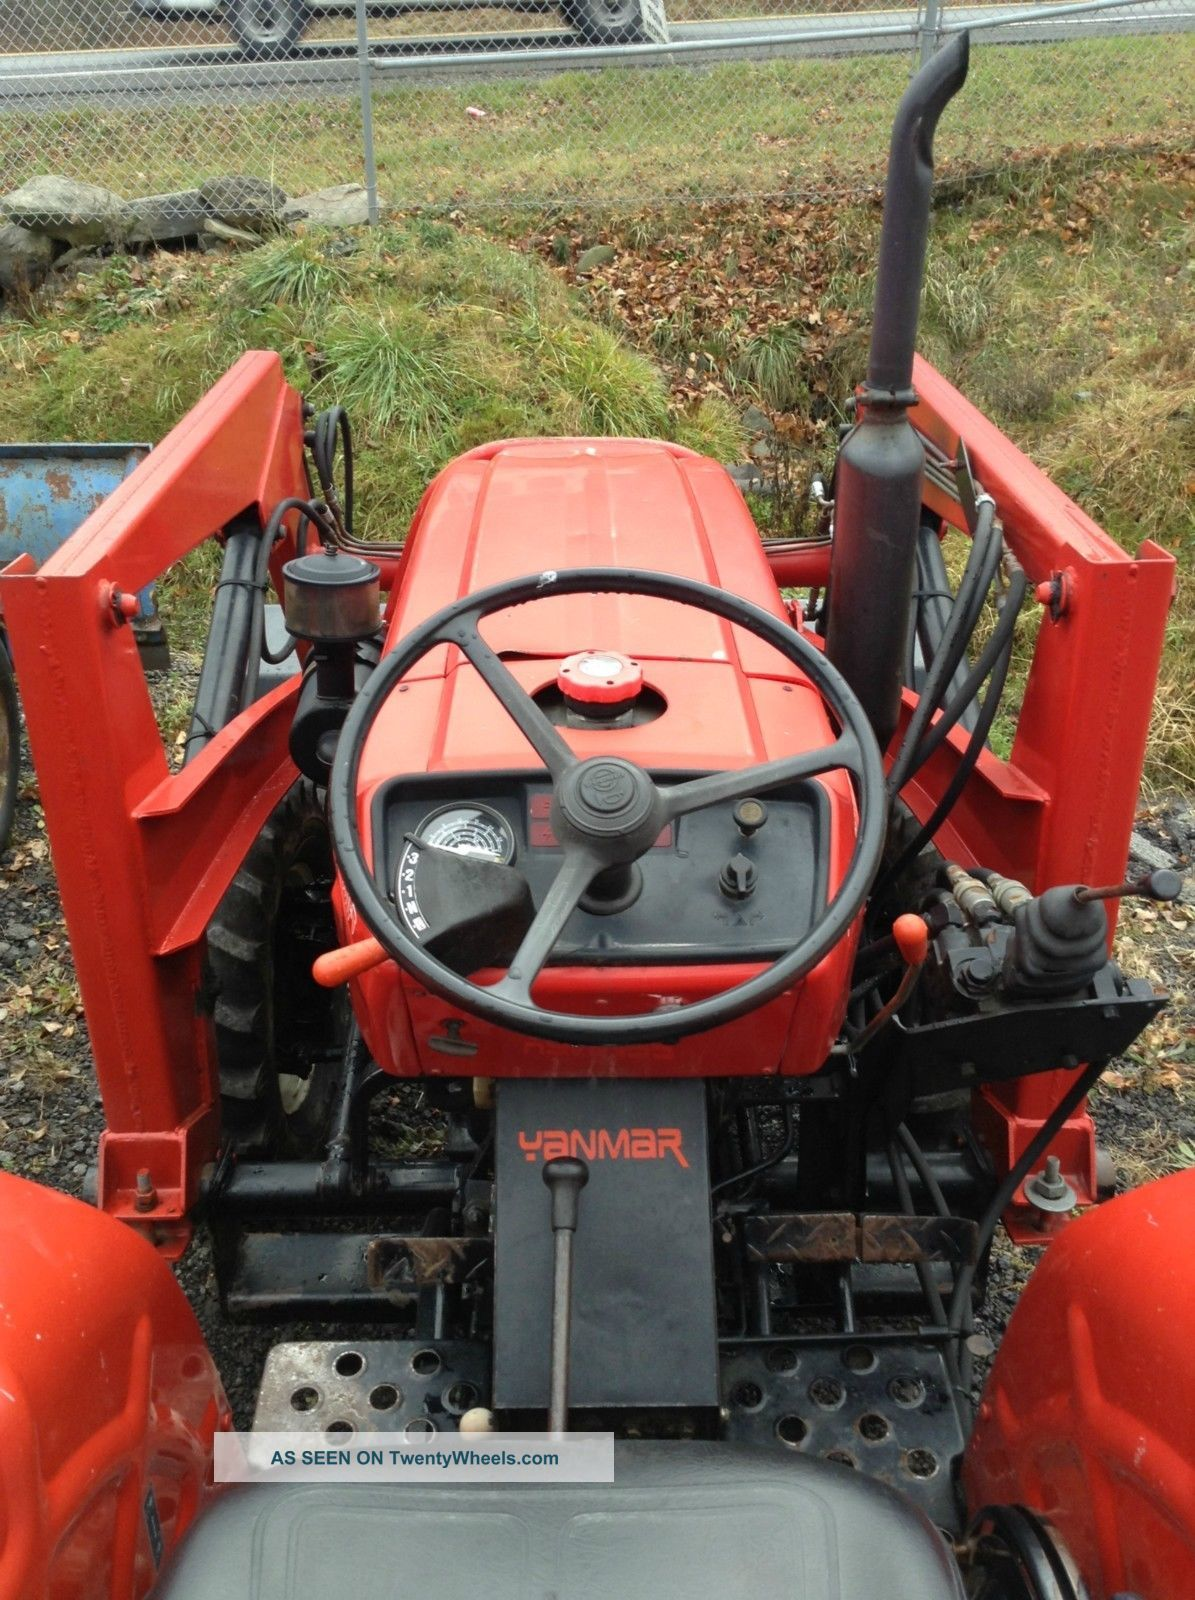 Yanmar 336d Parts : Tractor parts for mahindra branson ford new holland